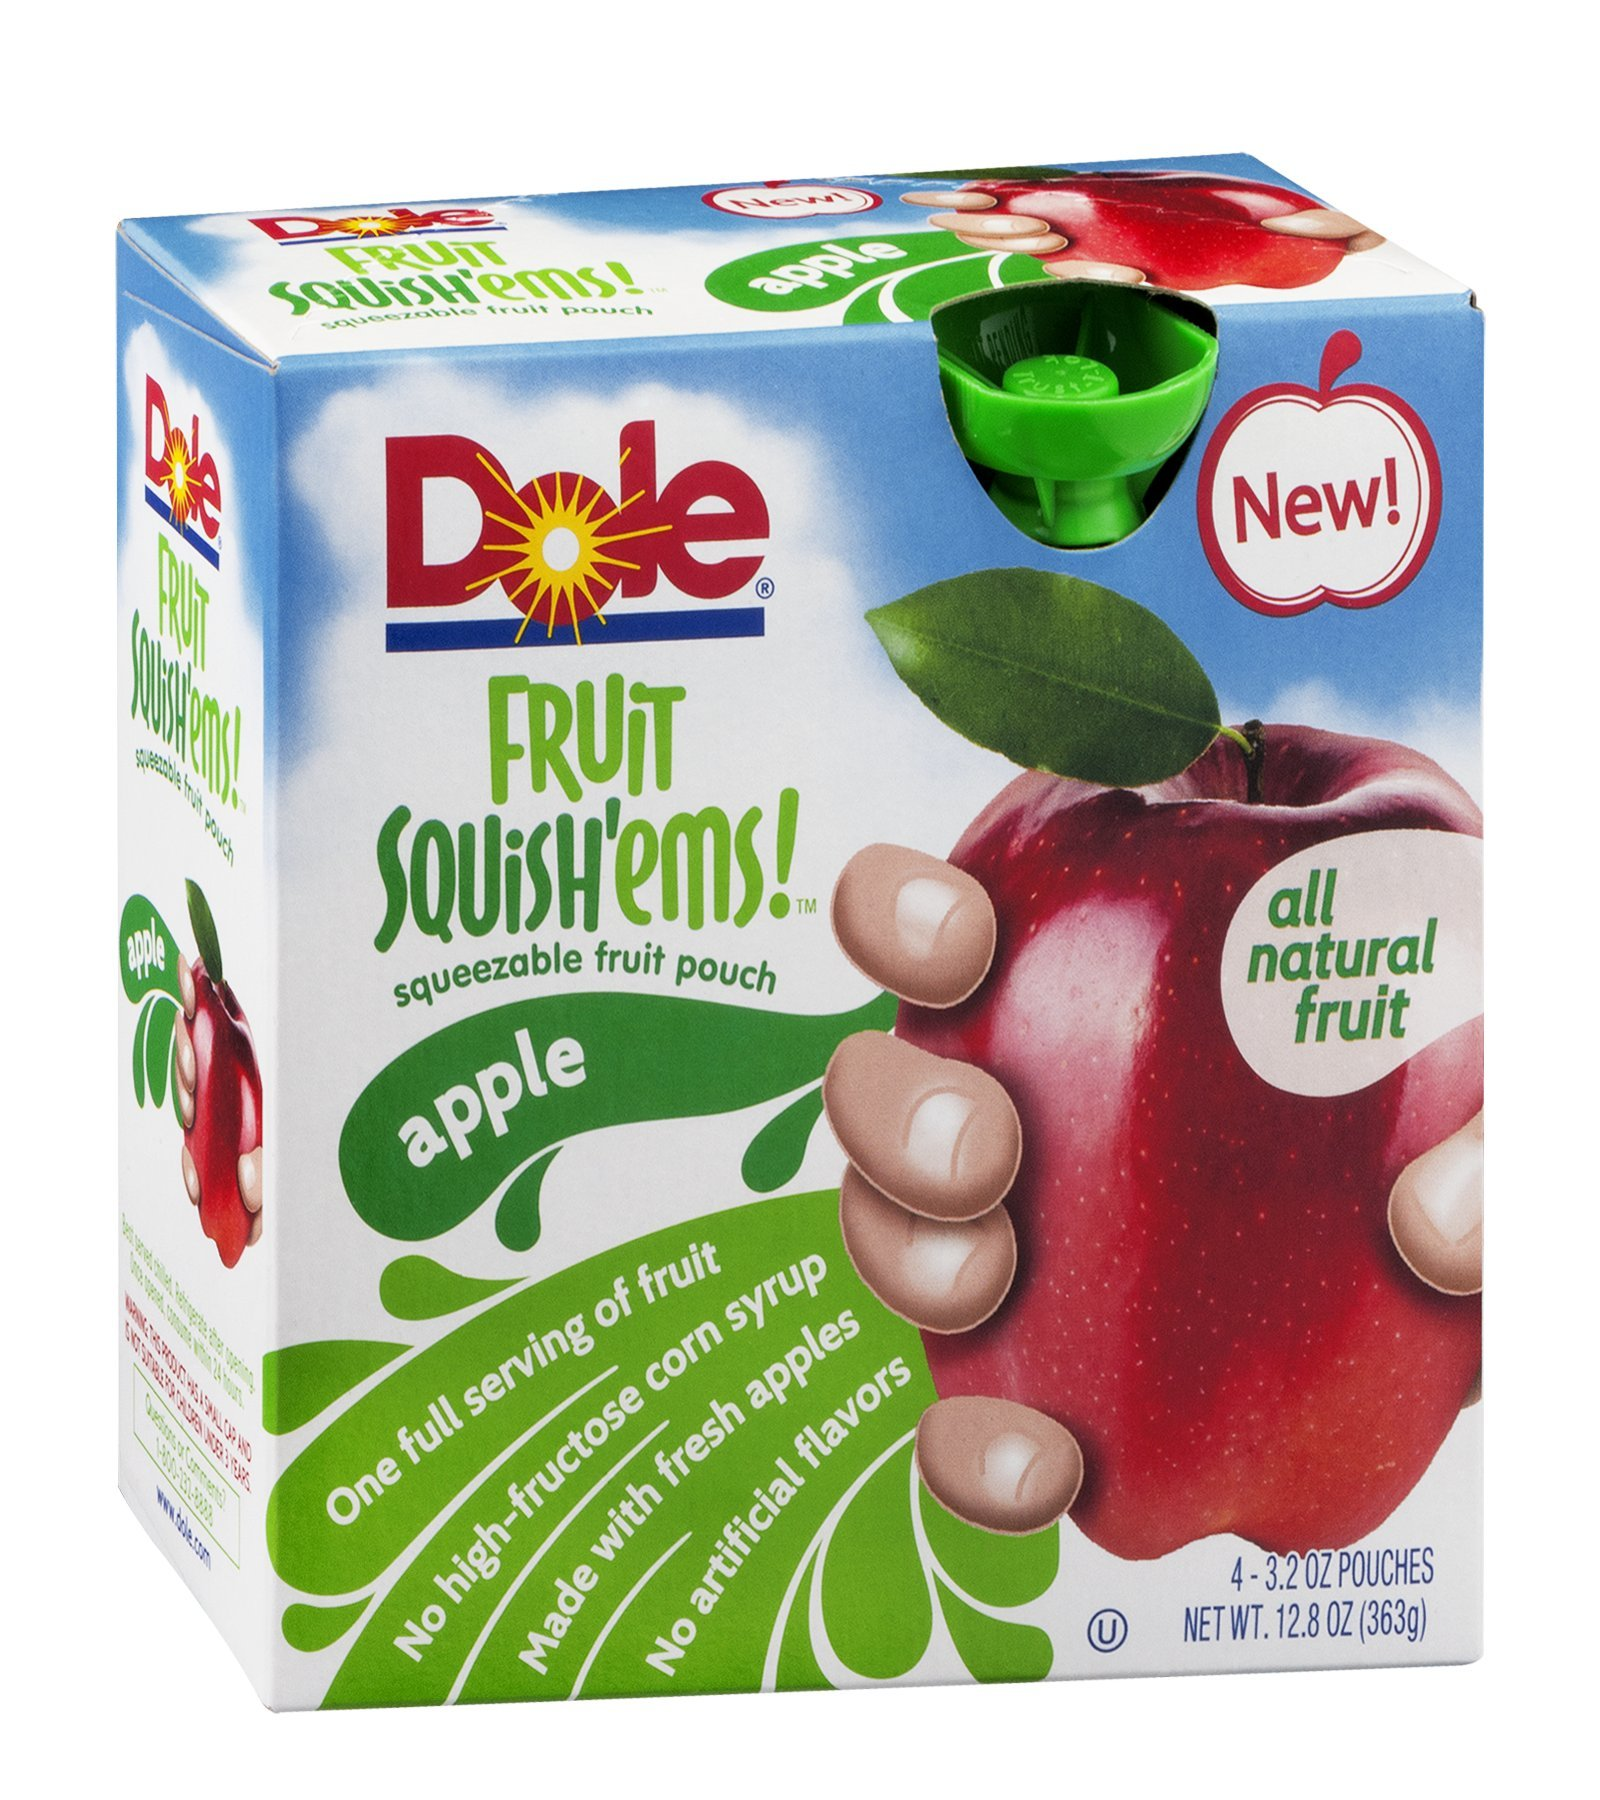 Dole Fruit Squish'ems! Squeezable Fruit Pouch Apple 12.8 OZ (Pack of 24) by Dole (Image #1)